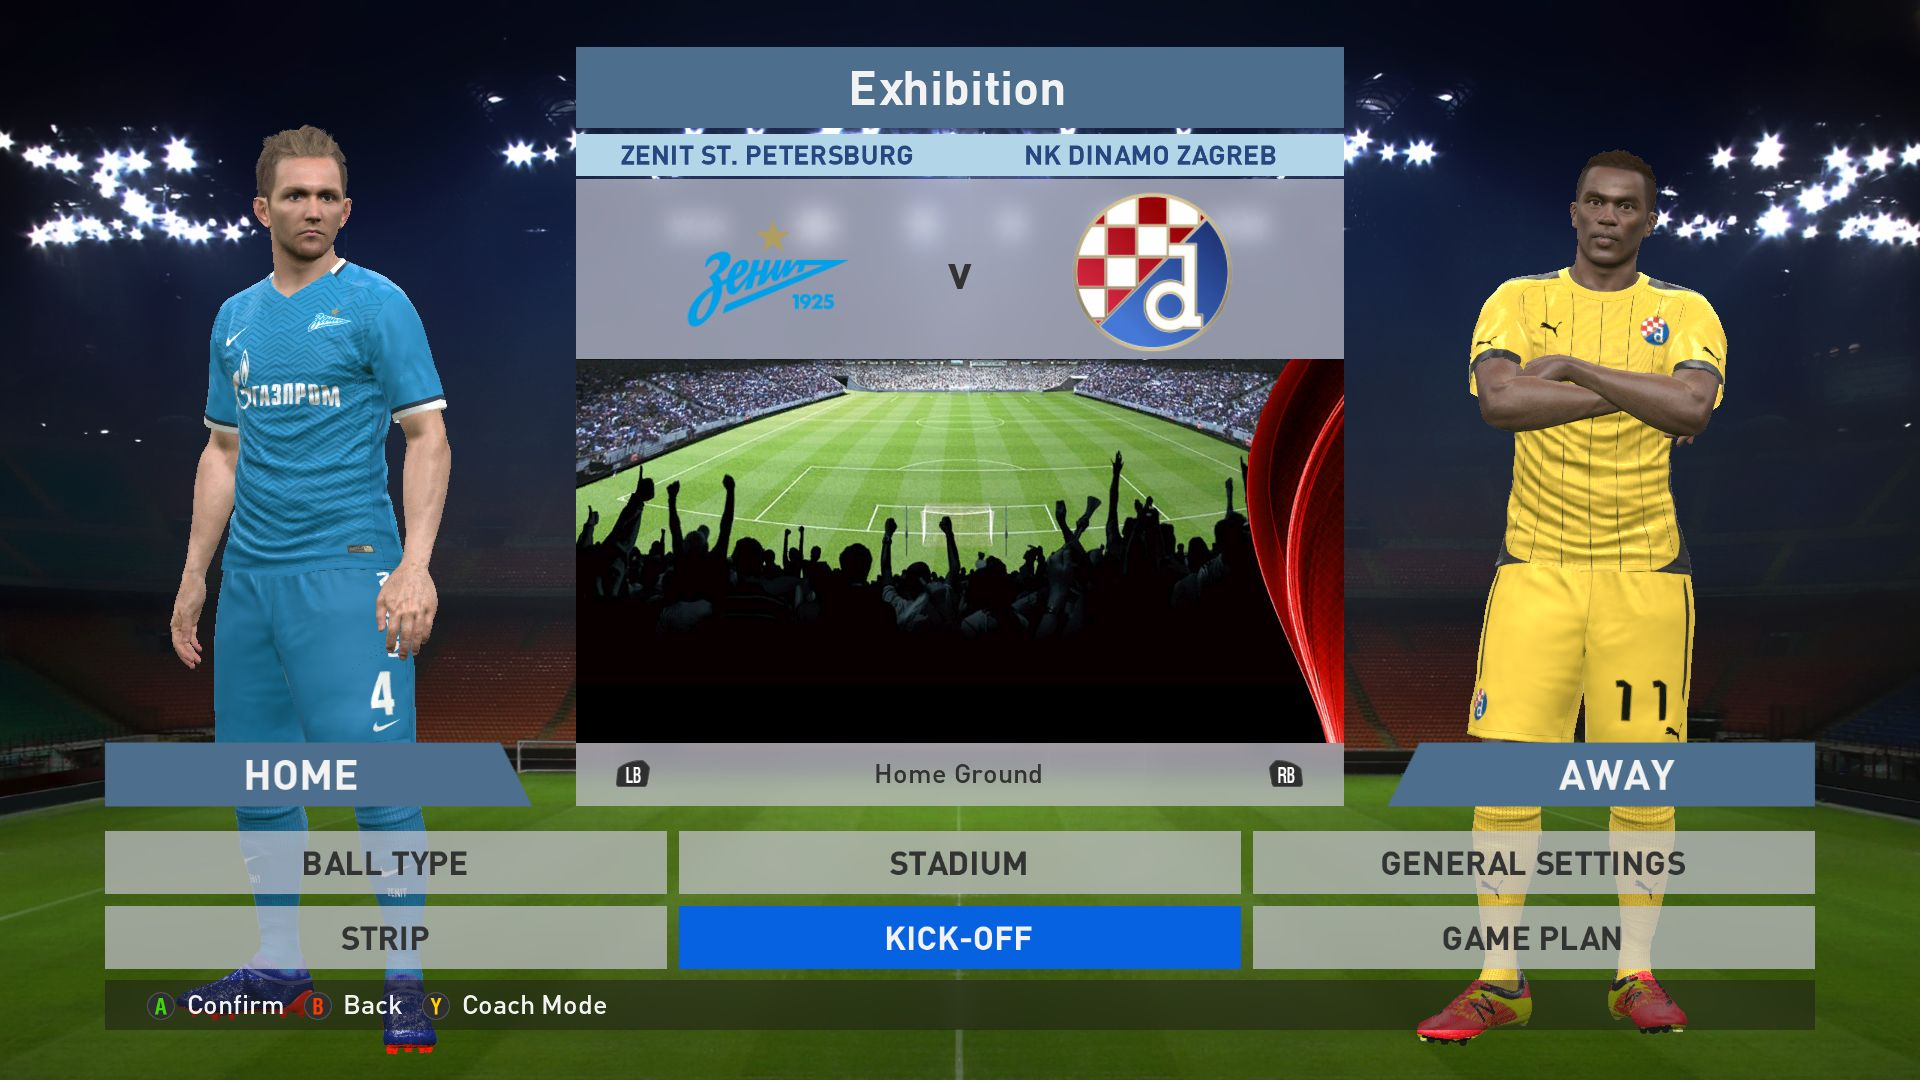 Zenit St Petersburg Vs Nk Dinamo Zagreb Petrovsky Stadium Pes 2016 Pro Evolution Soccer 2016 Konami Pc Gameplay P Pro Evolution Soccer Petersburg Zagreb